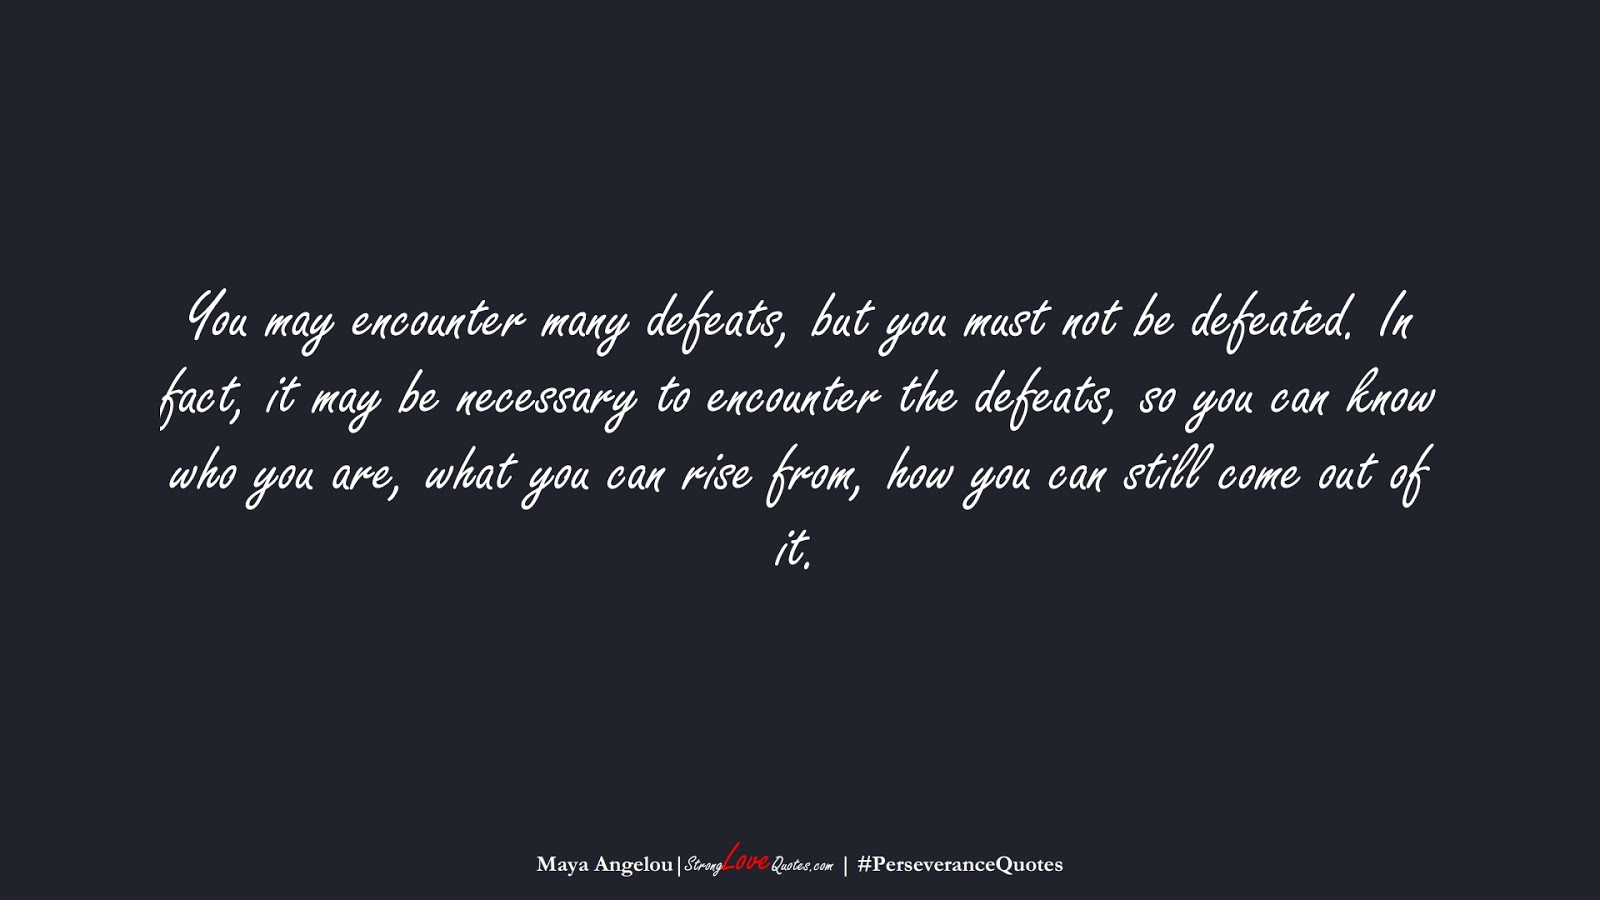 You may encounter many defeats, but you must not be defeated. In fact, it may be necessary to encounter the defeats, so you can know who you are, what you can rise from, how you can still come out of it. (Maya Angelou);  #PerseveranceQuotes